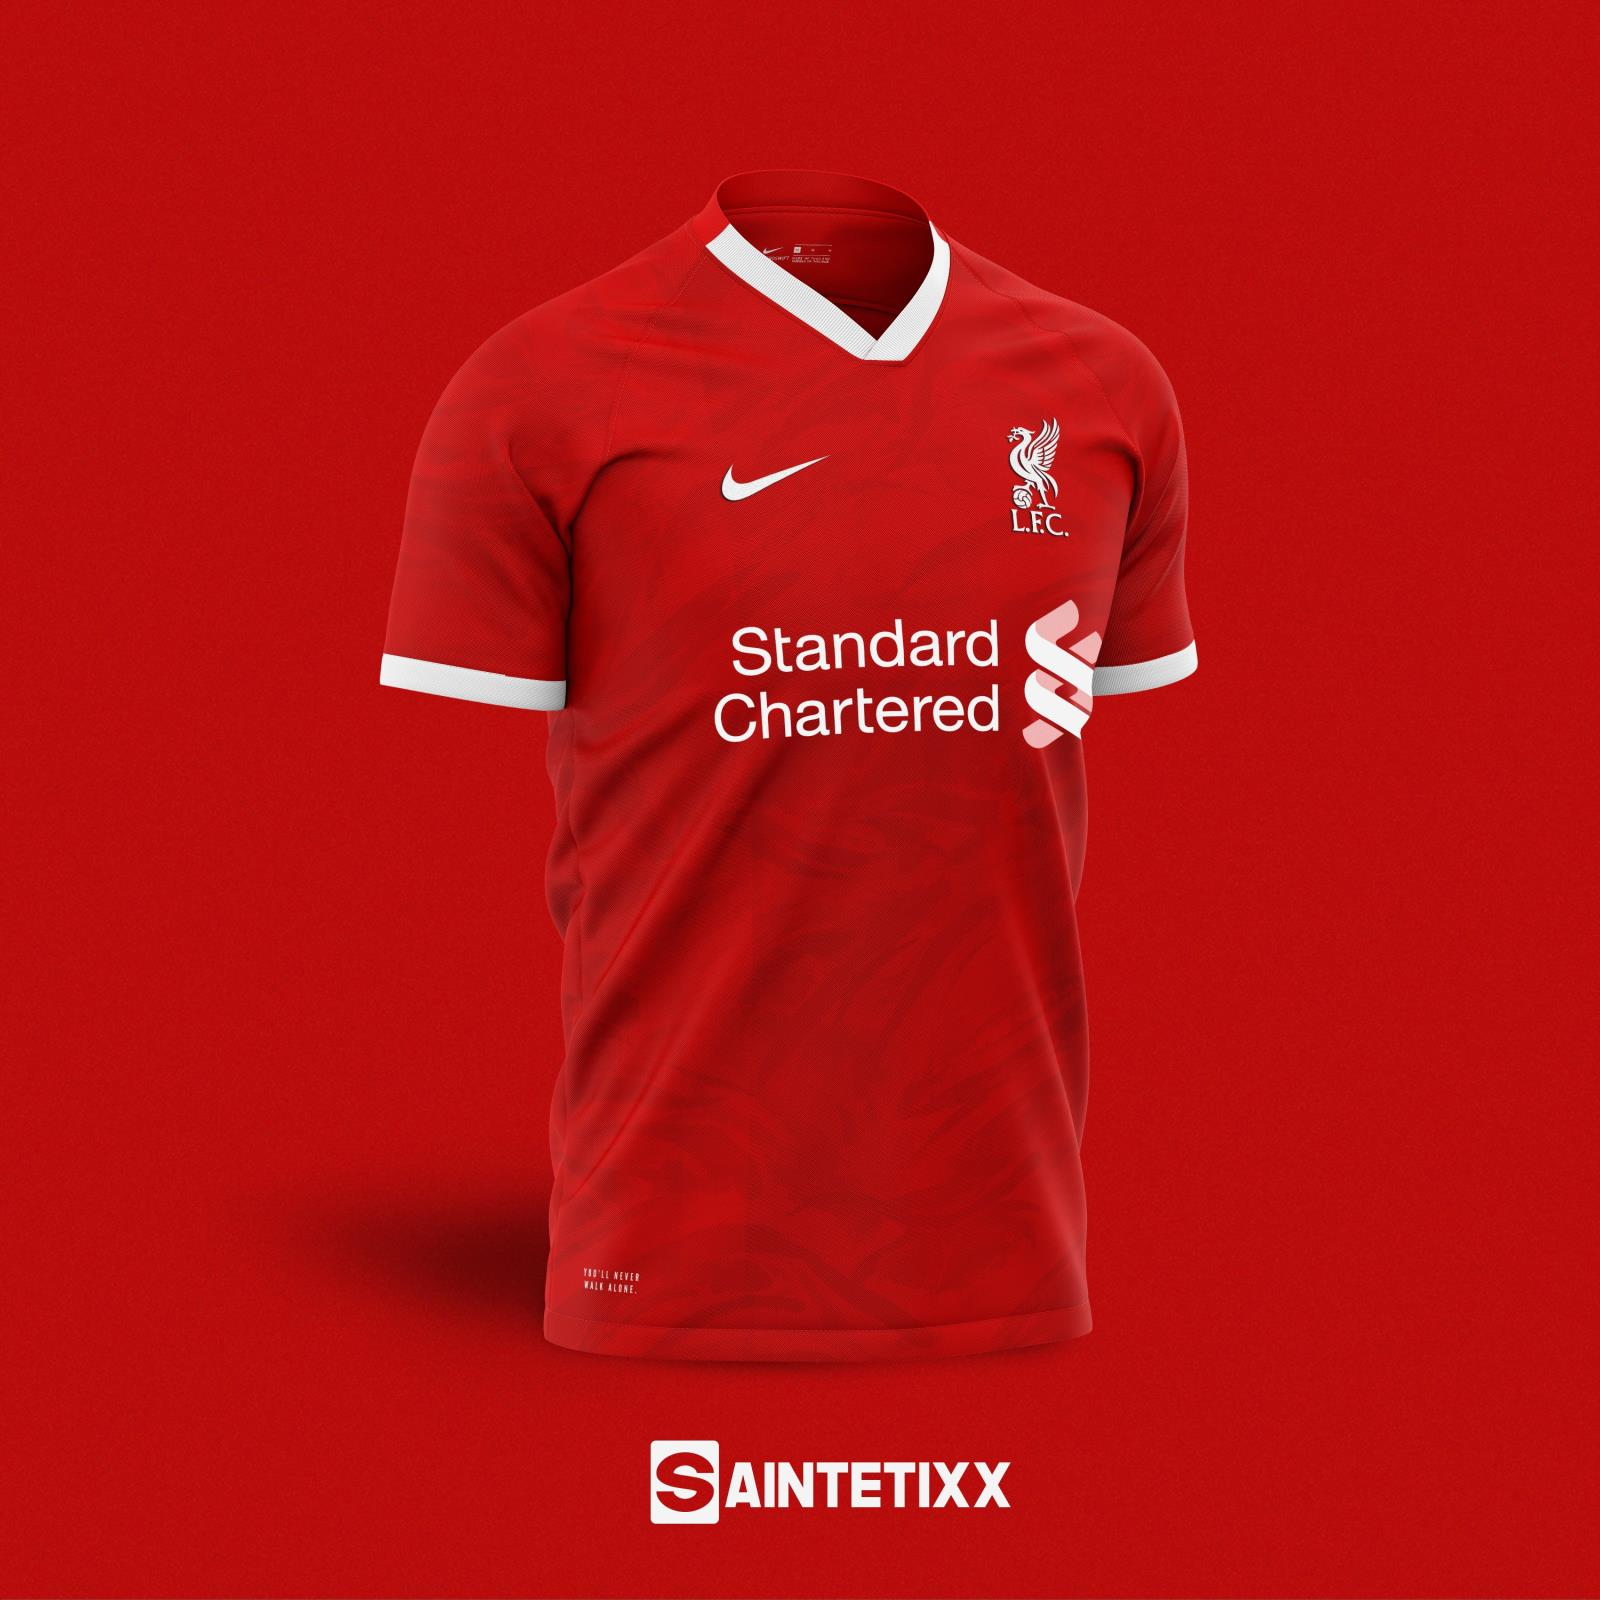 viuda Bueno claro  Nike Liverpool 20-21 Home, Away & Third Concept Kits - Footy Headlines